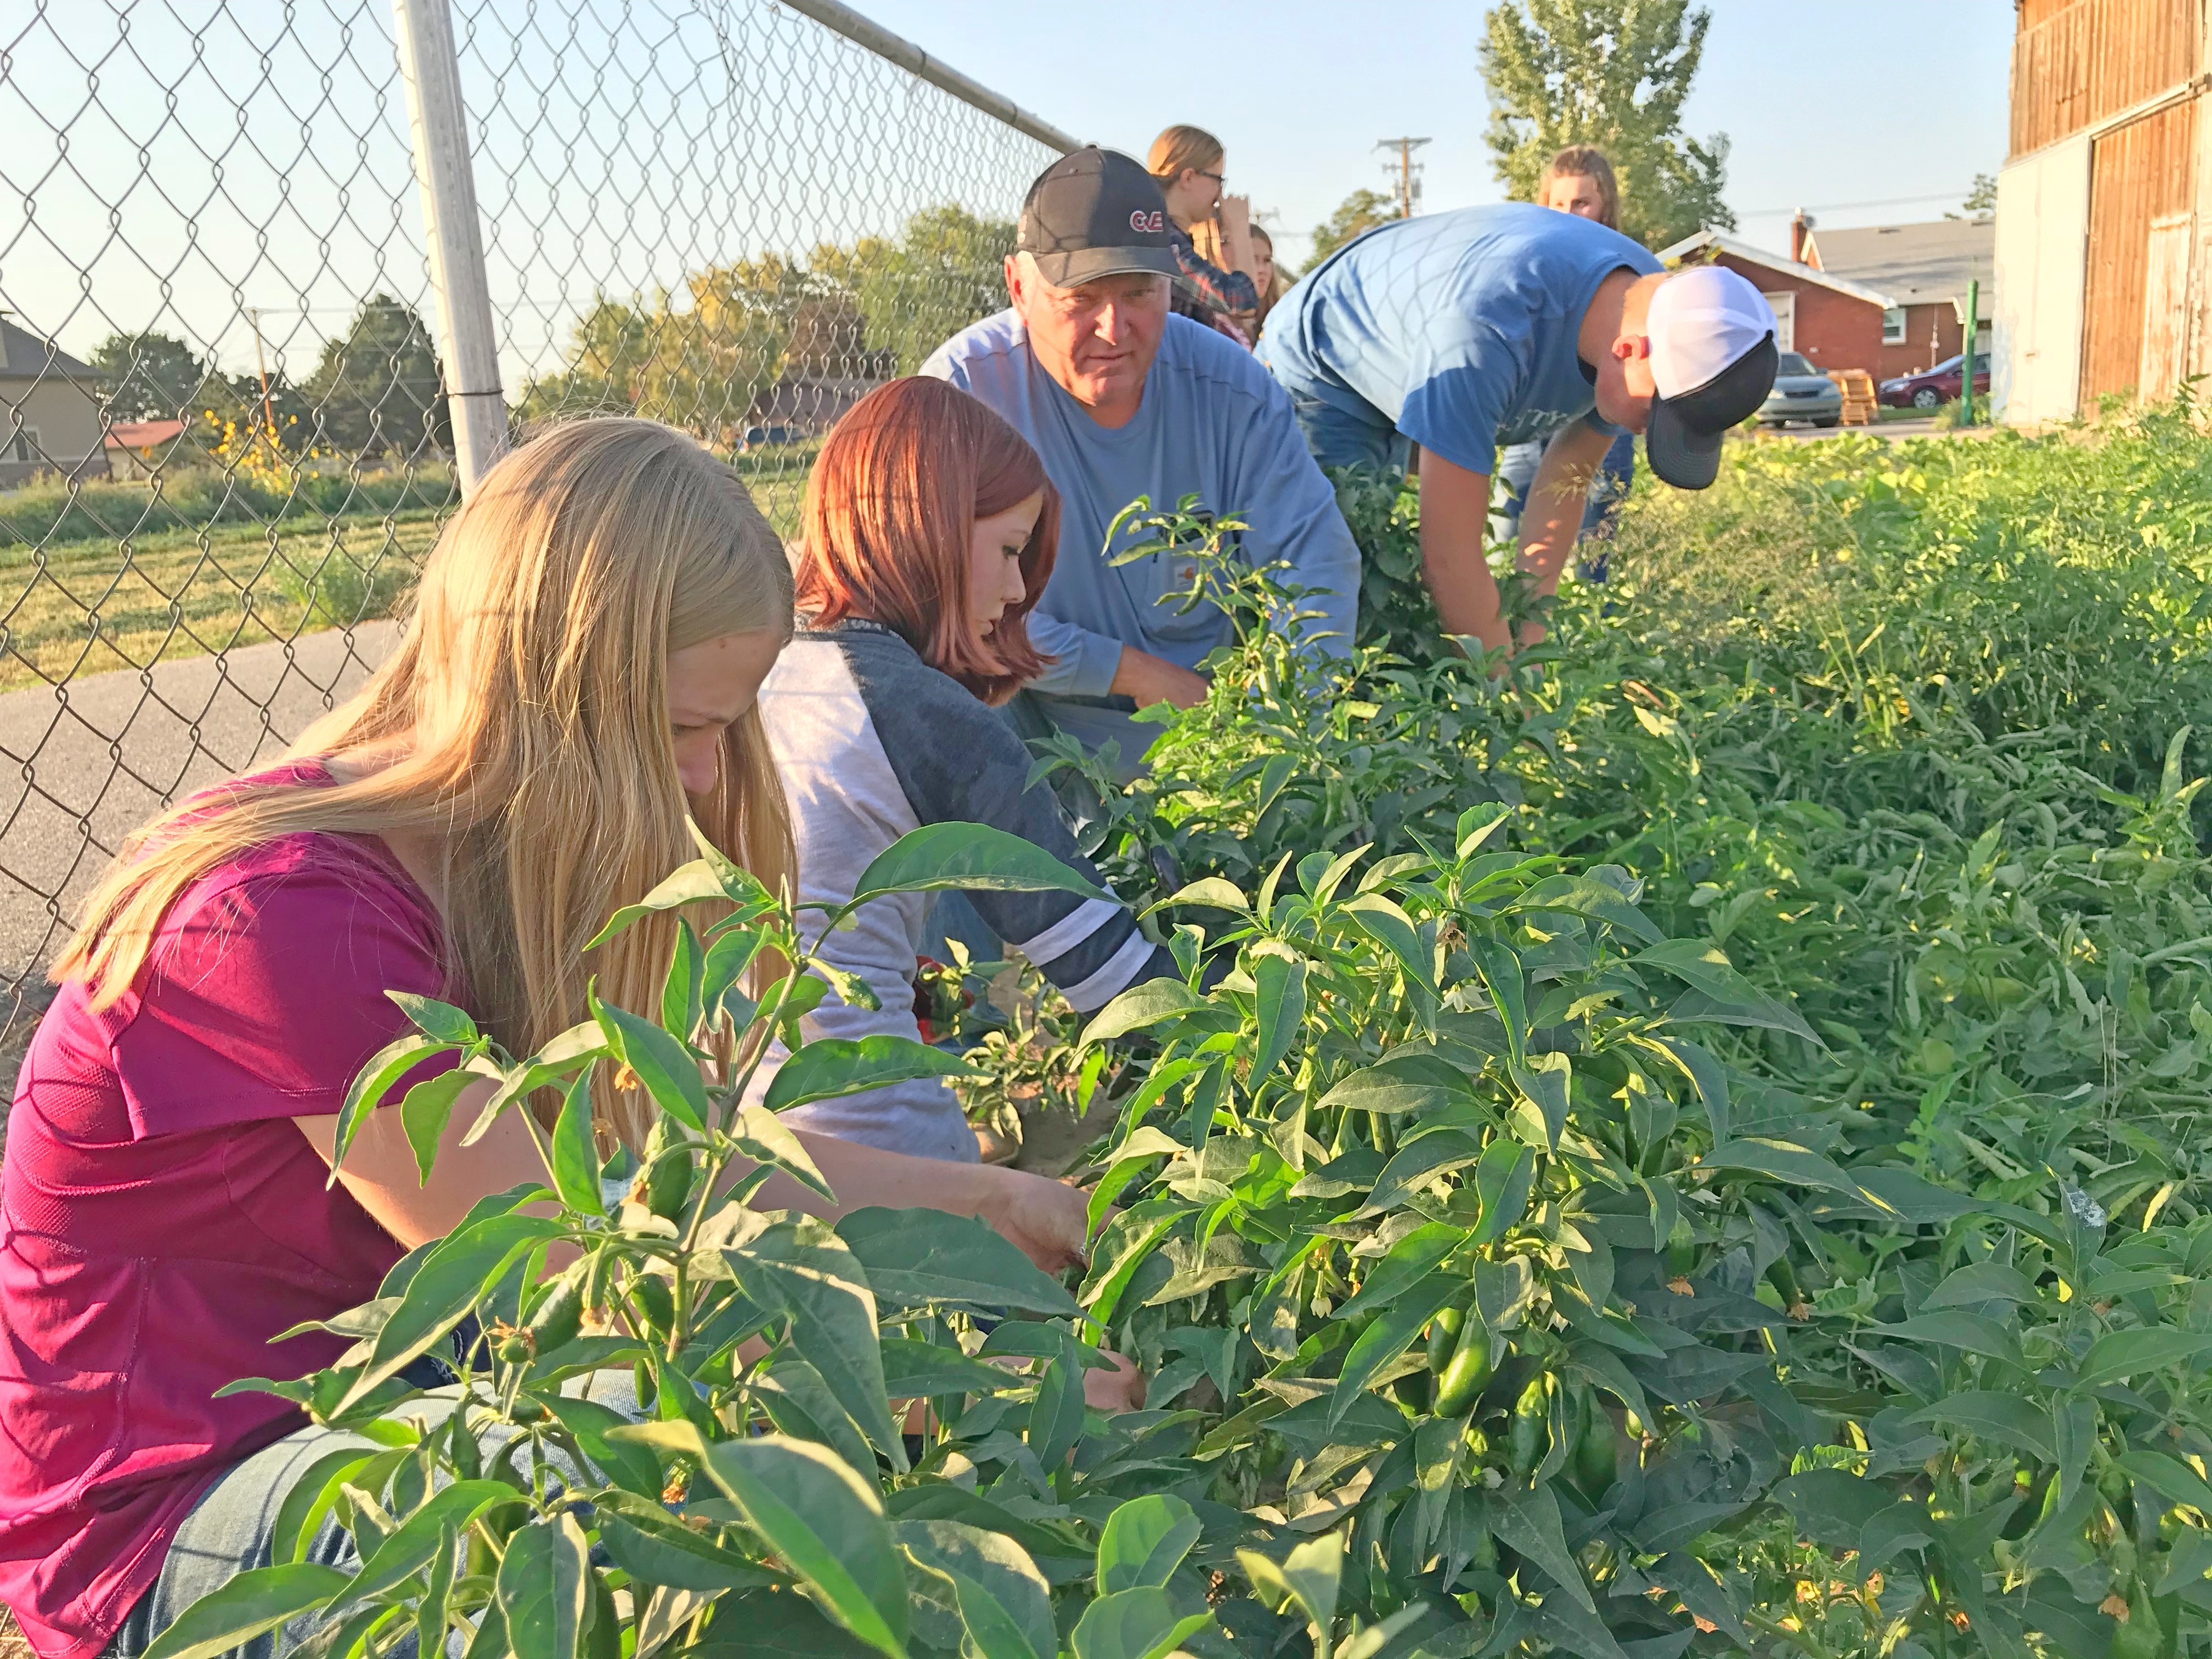 Left, Emma Packer, her sister Annie Packer and Howell Bishop Rodney J. Ward pick tomatoes as part of a harvest and canning project in Plain City, Utah, on Sept. 5, 2018.